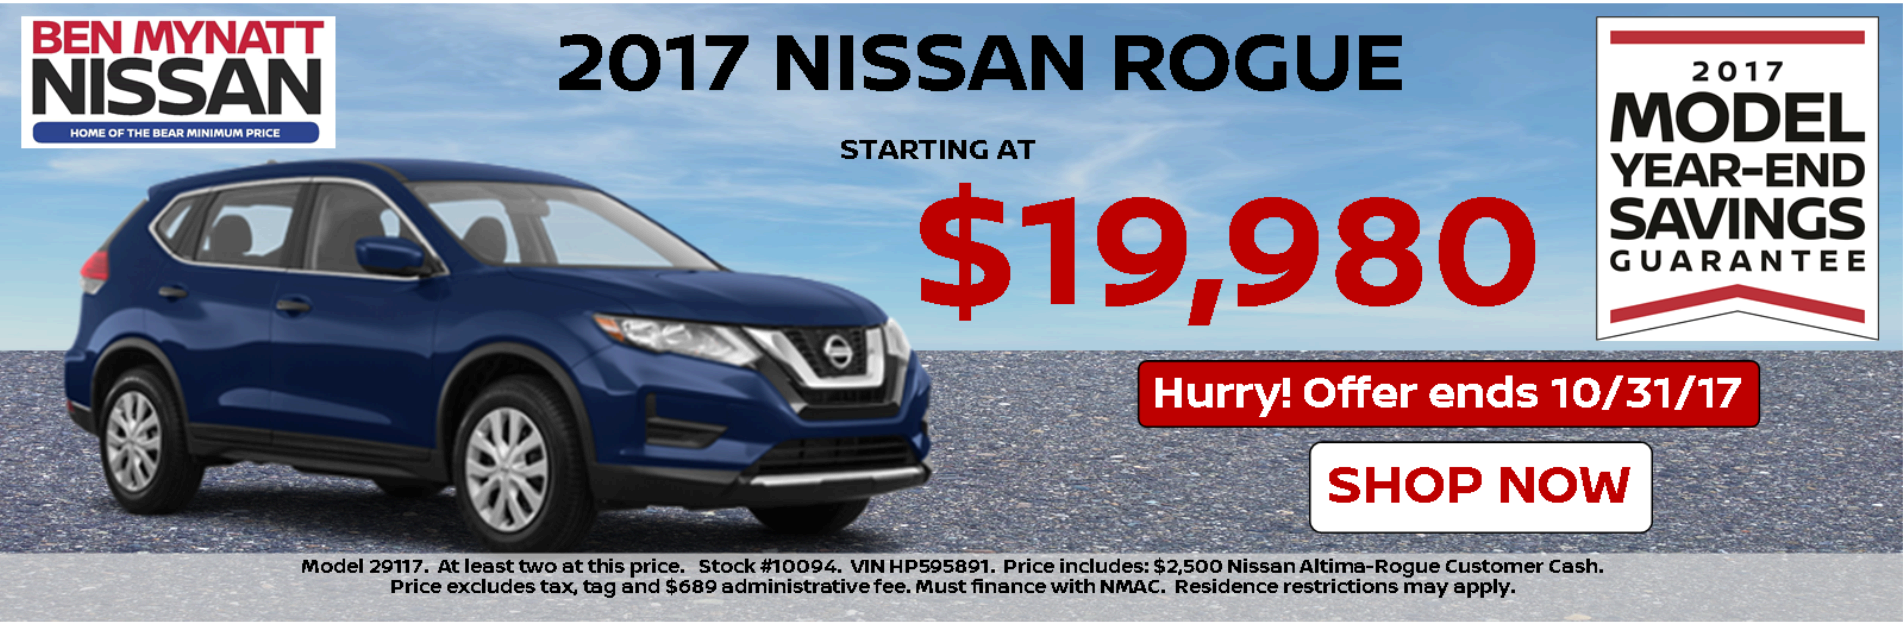 Ben mynatt nissan is your salisbury nc nissan dealer new used car sales auto repair parts